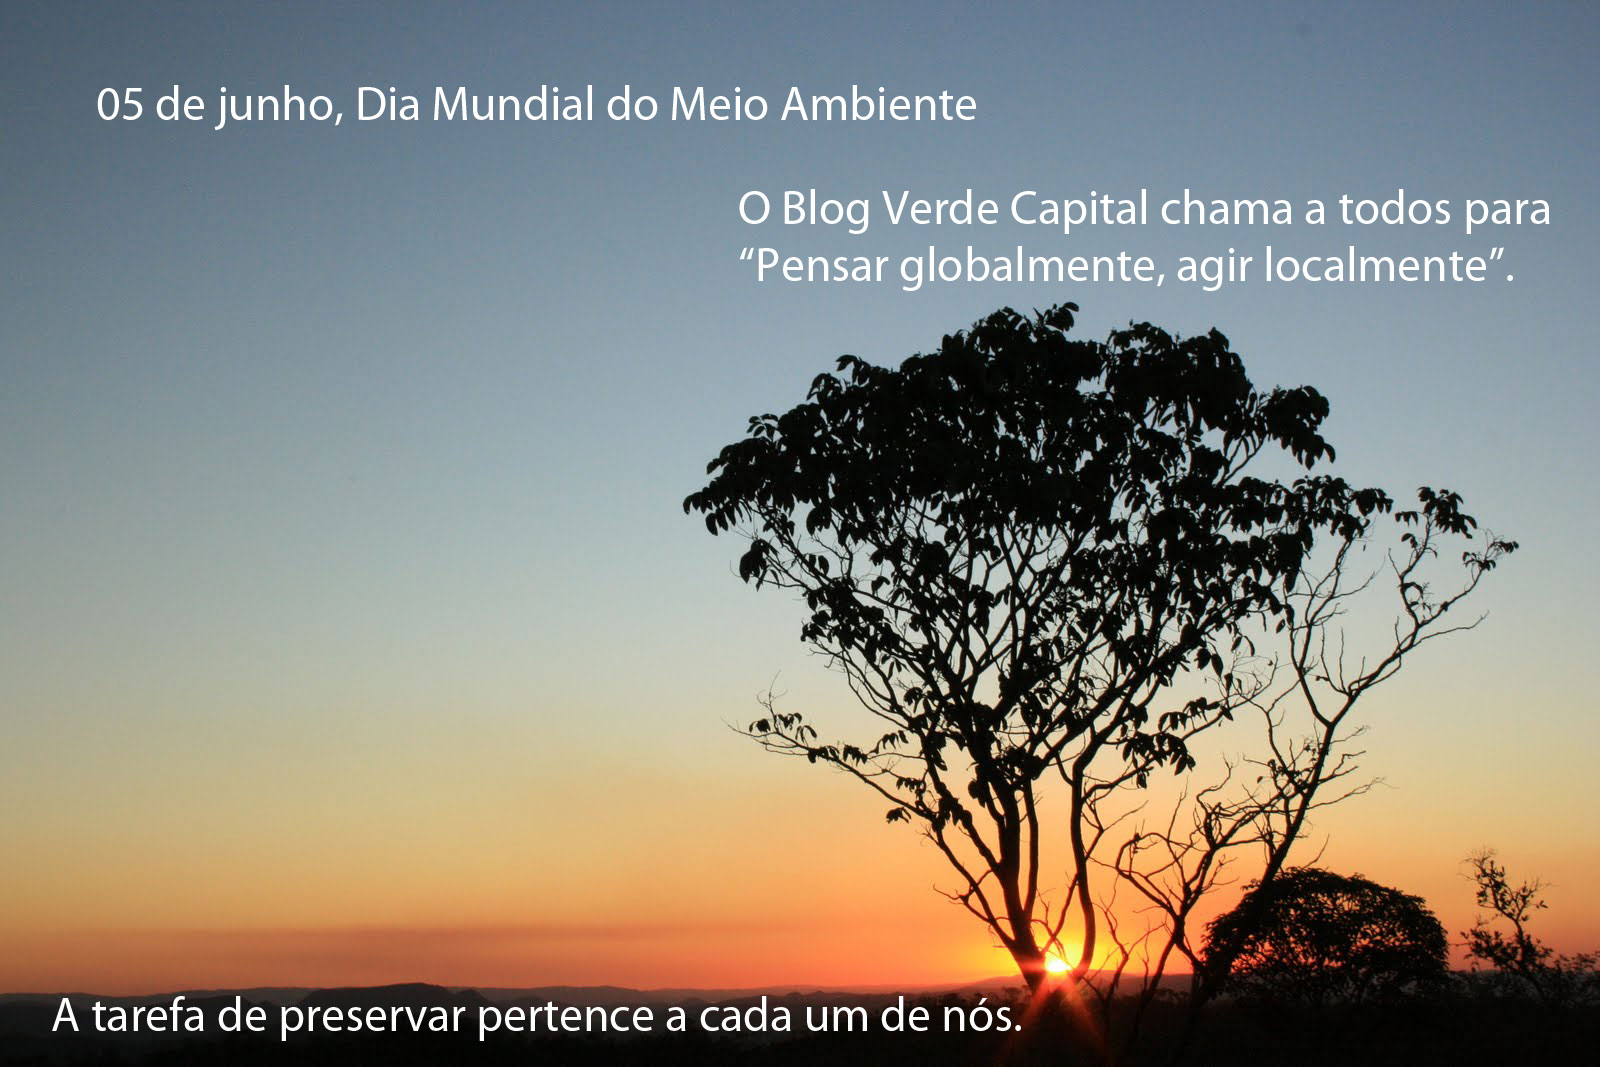 Well-known frases sobre meio ambiente | Verde Capital.org FV63